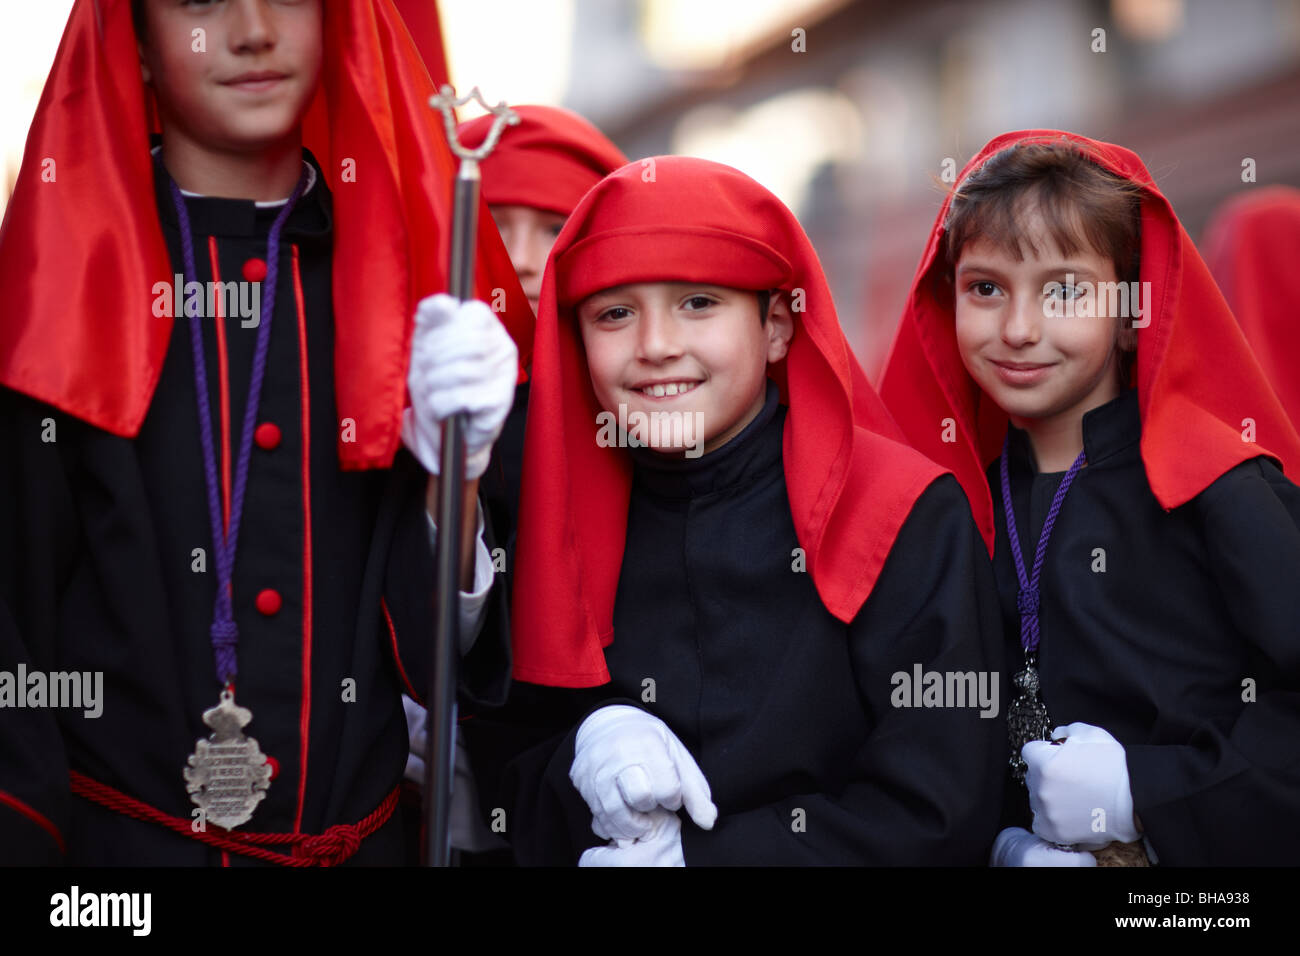 children in the Semana Santa procession in Malaga, Andalucia, Spain - Stock Image